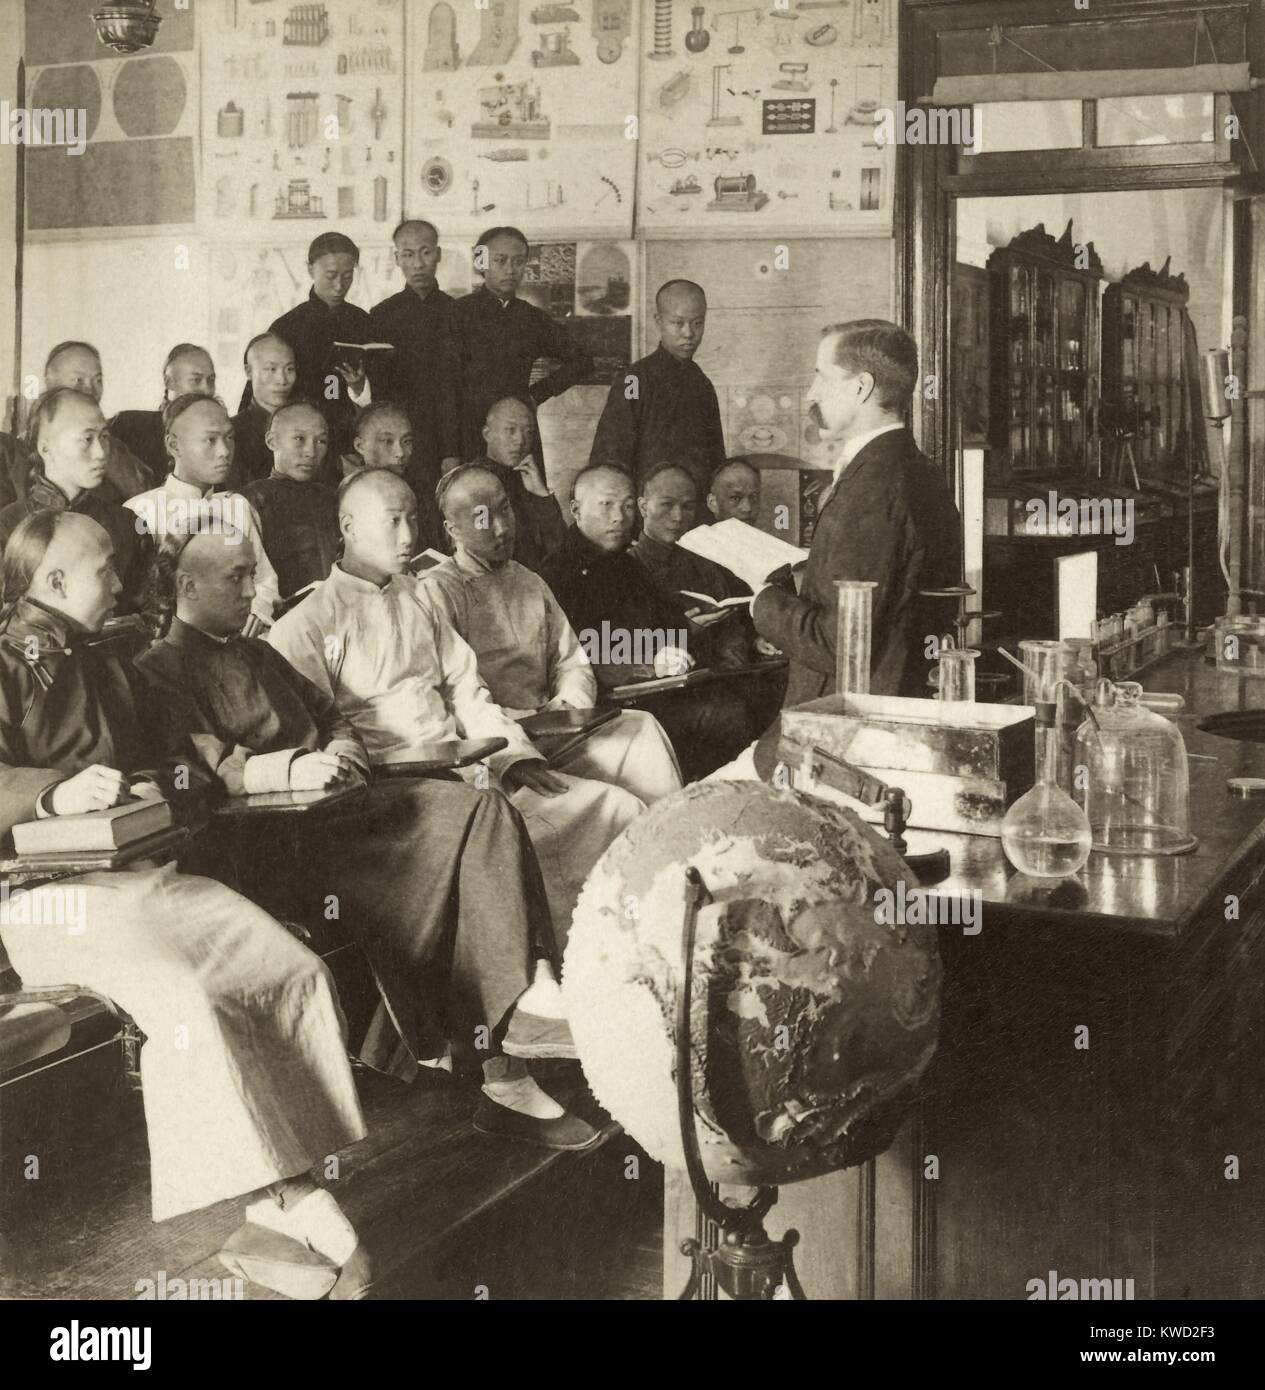 Classroom with Chinese men listening to an American lecturer in Shanghai, China, 1901. St. Johns American College, - Stock Image